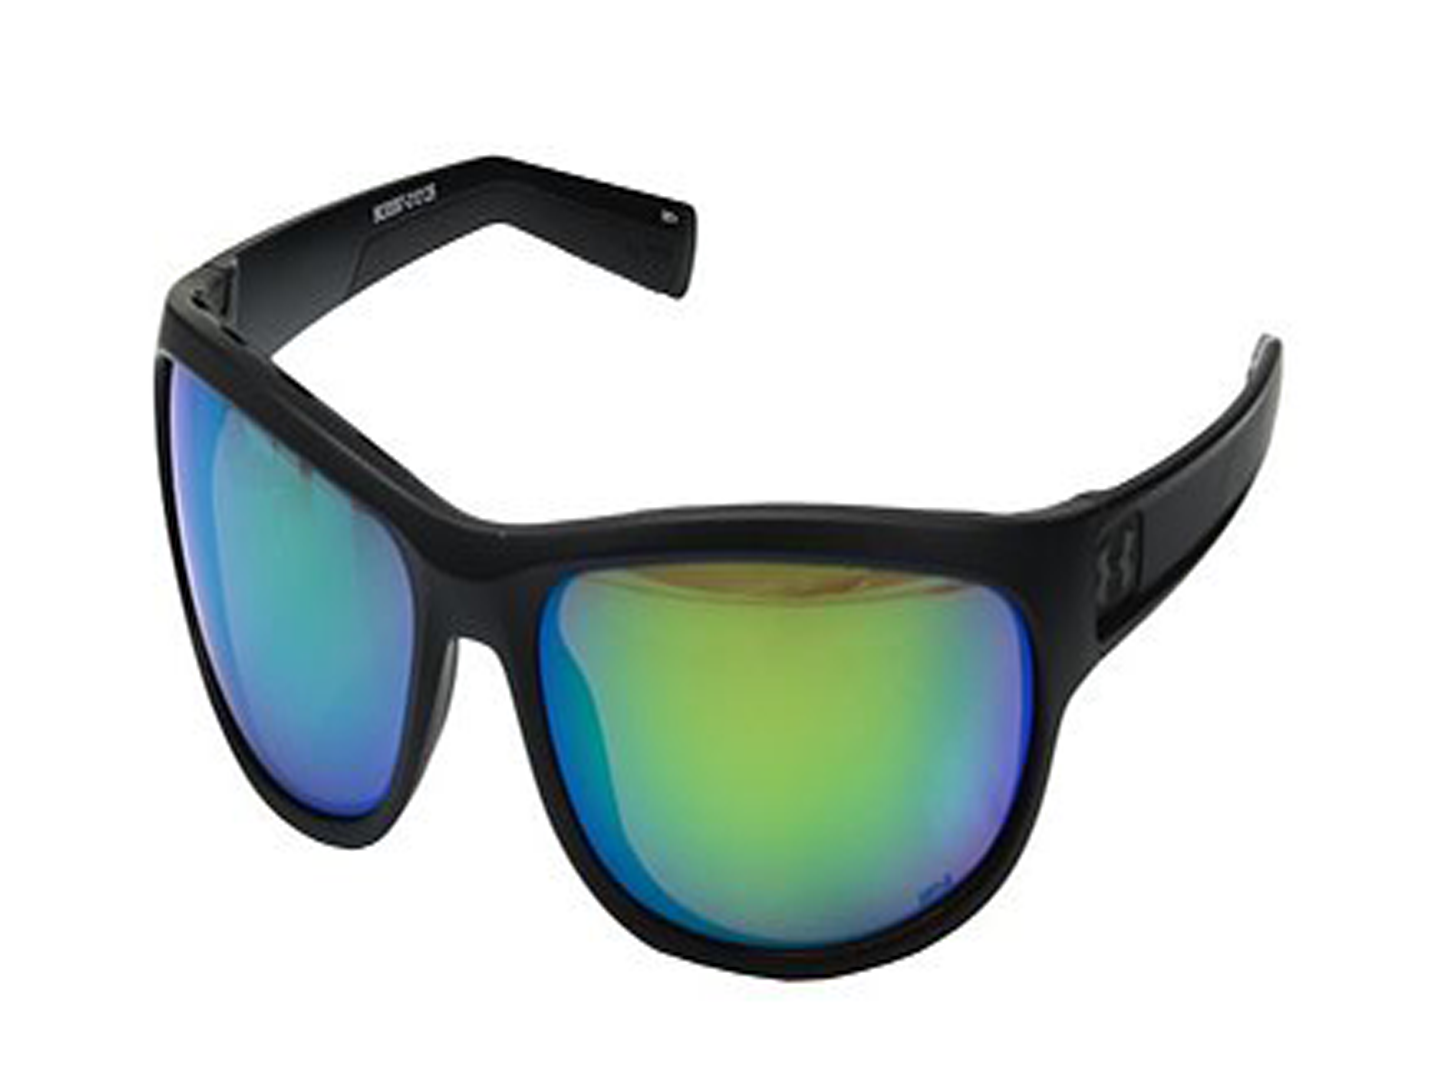 9eef770ed90 Under Armour has released two new Storm sunglass models with anglers in  mind. In this video we check out the UA Capture Storm and the UA Launch  Storm.